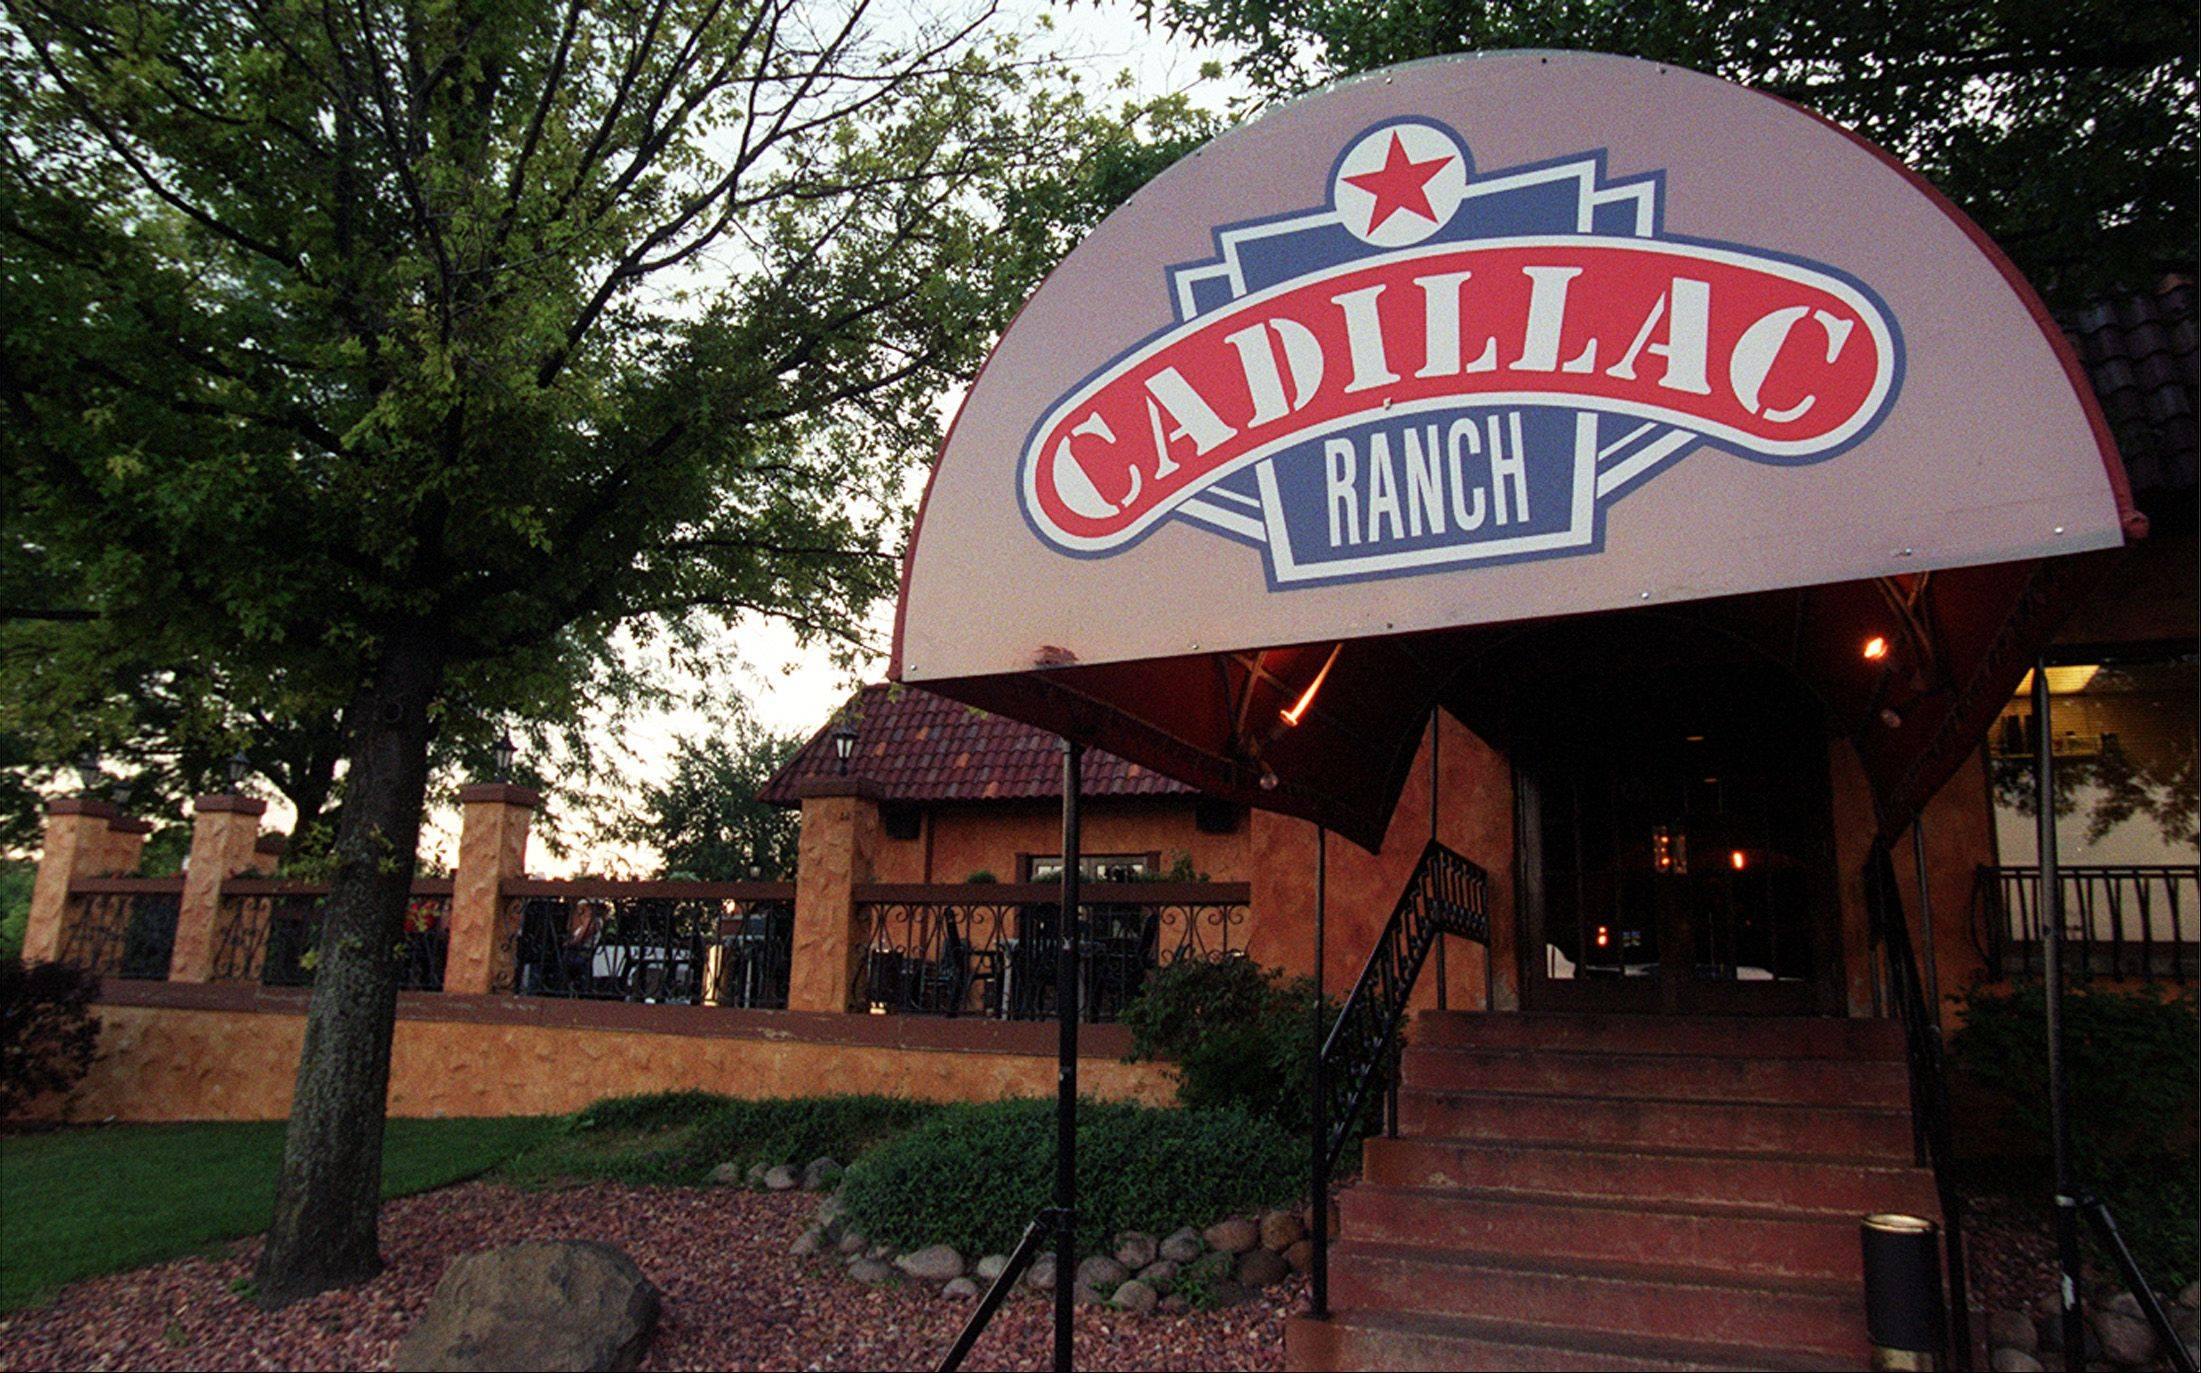 Bartlett officials meet with Cadillac Ranch reps, discuss improvements